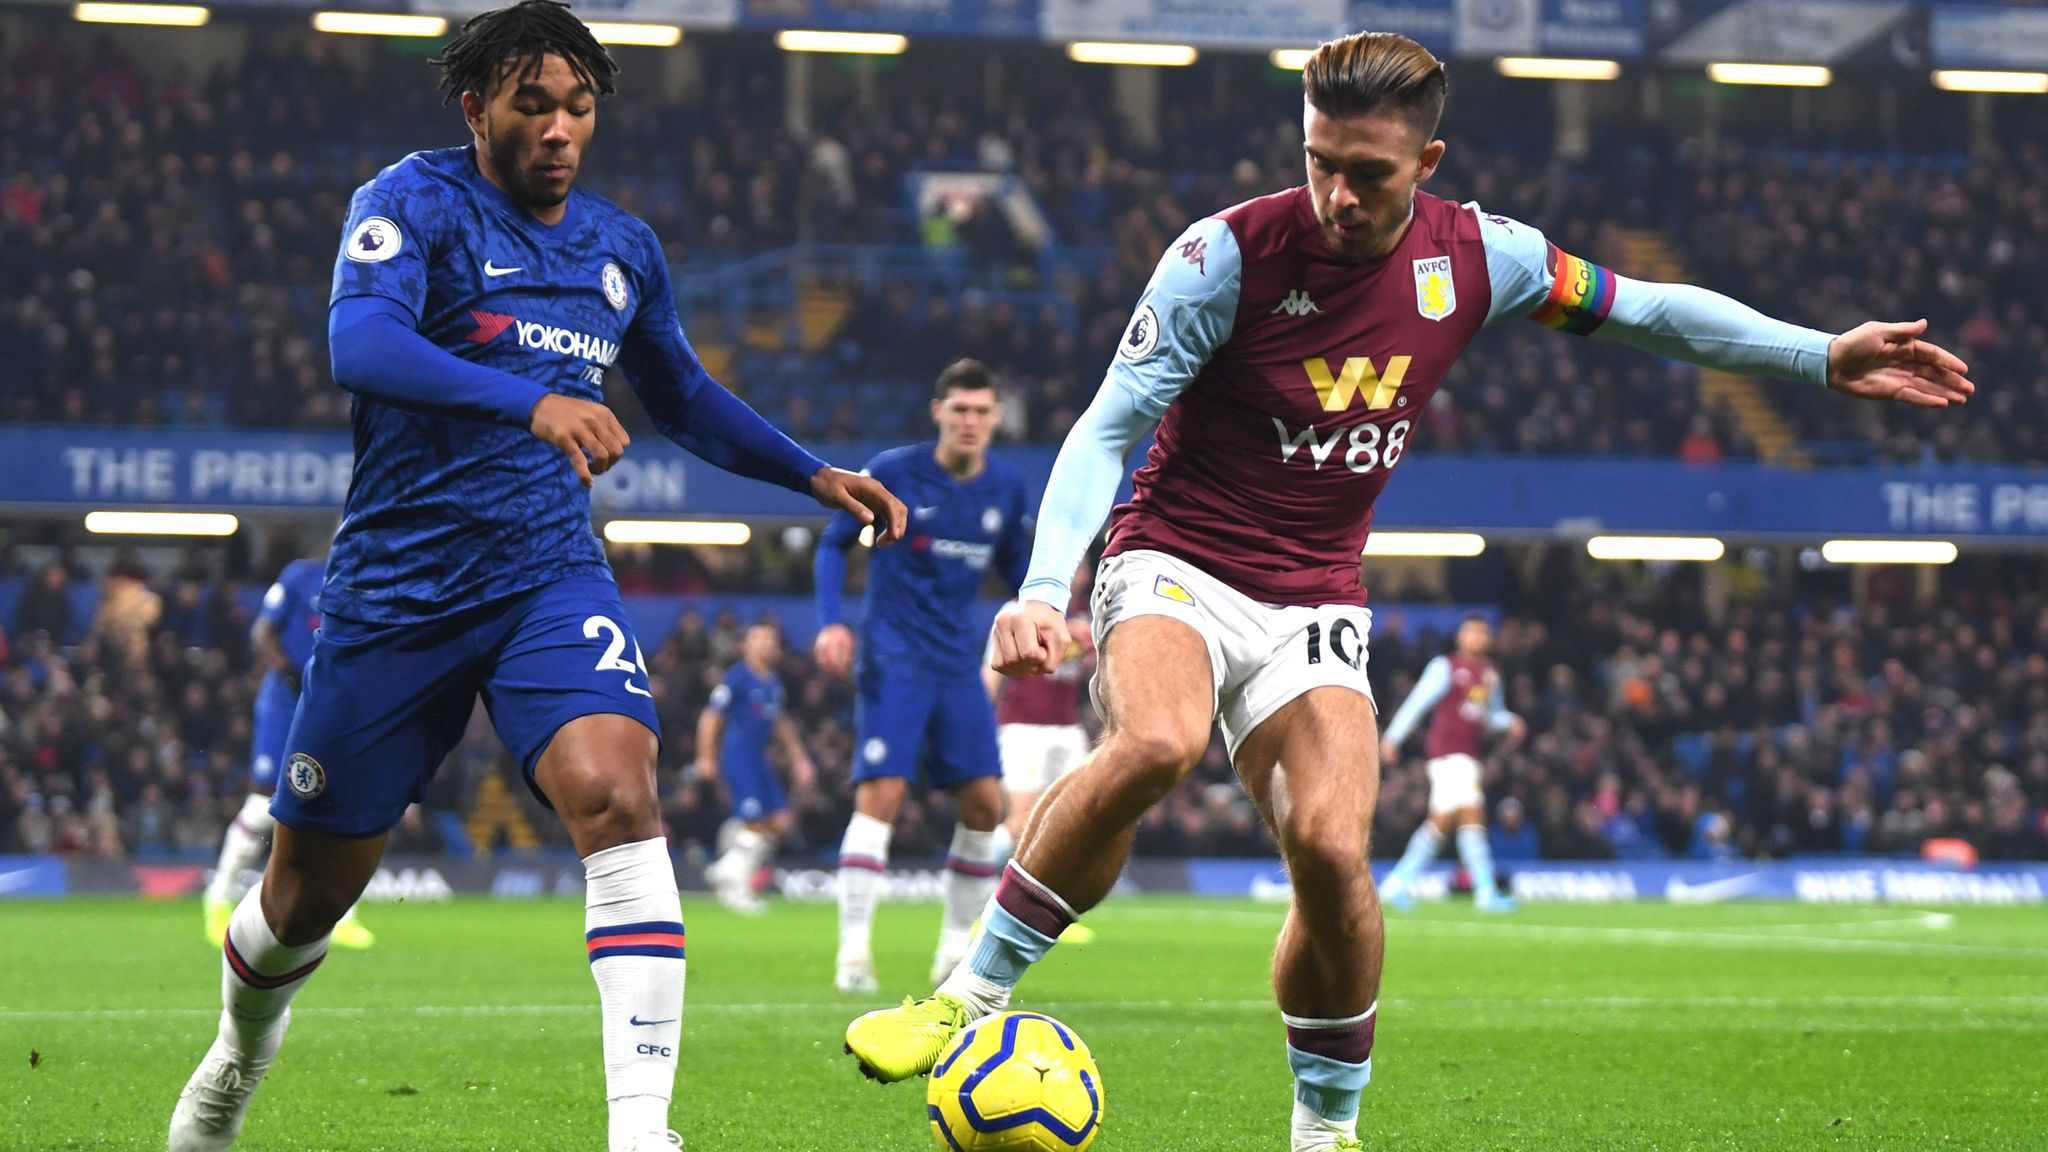 Chelsea 2-1 Aston Villa: Dean Smith says Jack Grealish is at risk of injury from persistent fouls